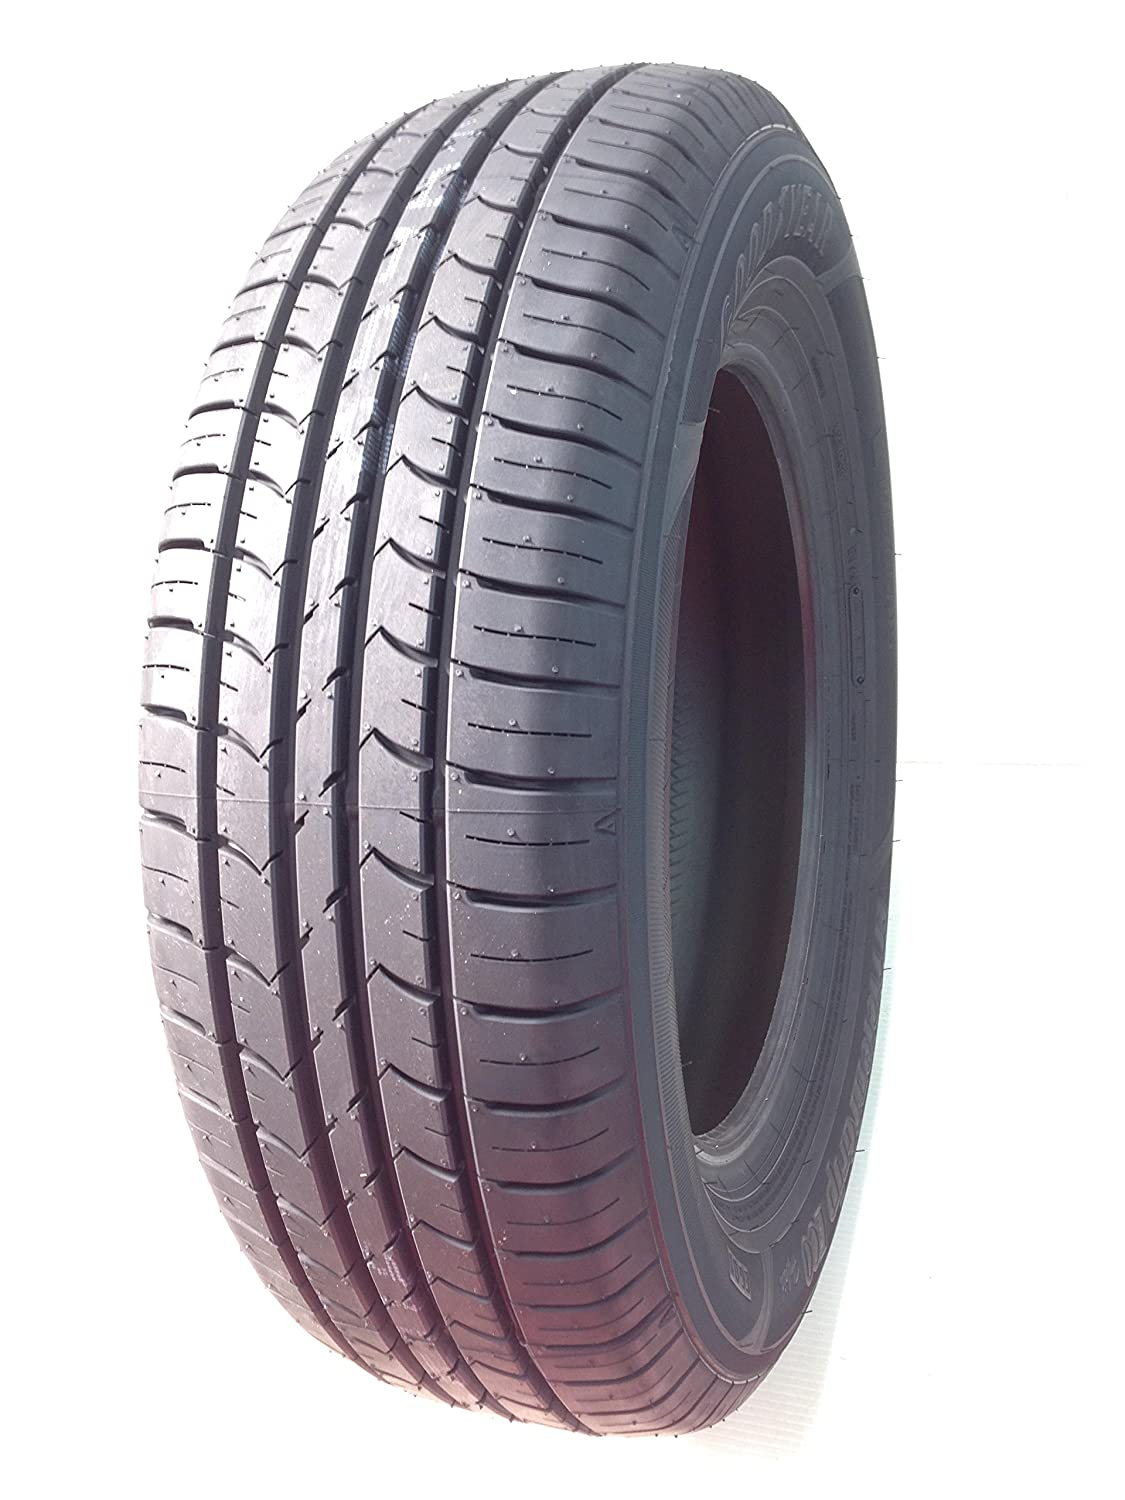 GOODYEAR(グッドイヤー) 低燃費タイヤ EfficientGrip ECO EG01 185/60R15 84H B01KC29UMO